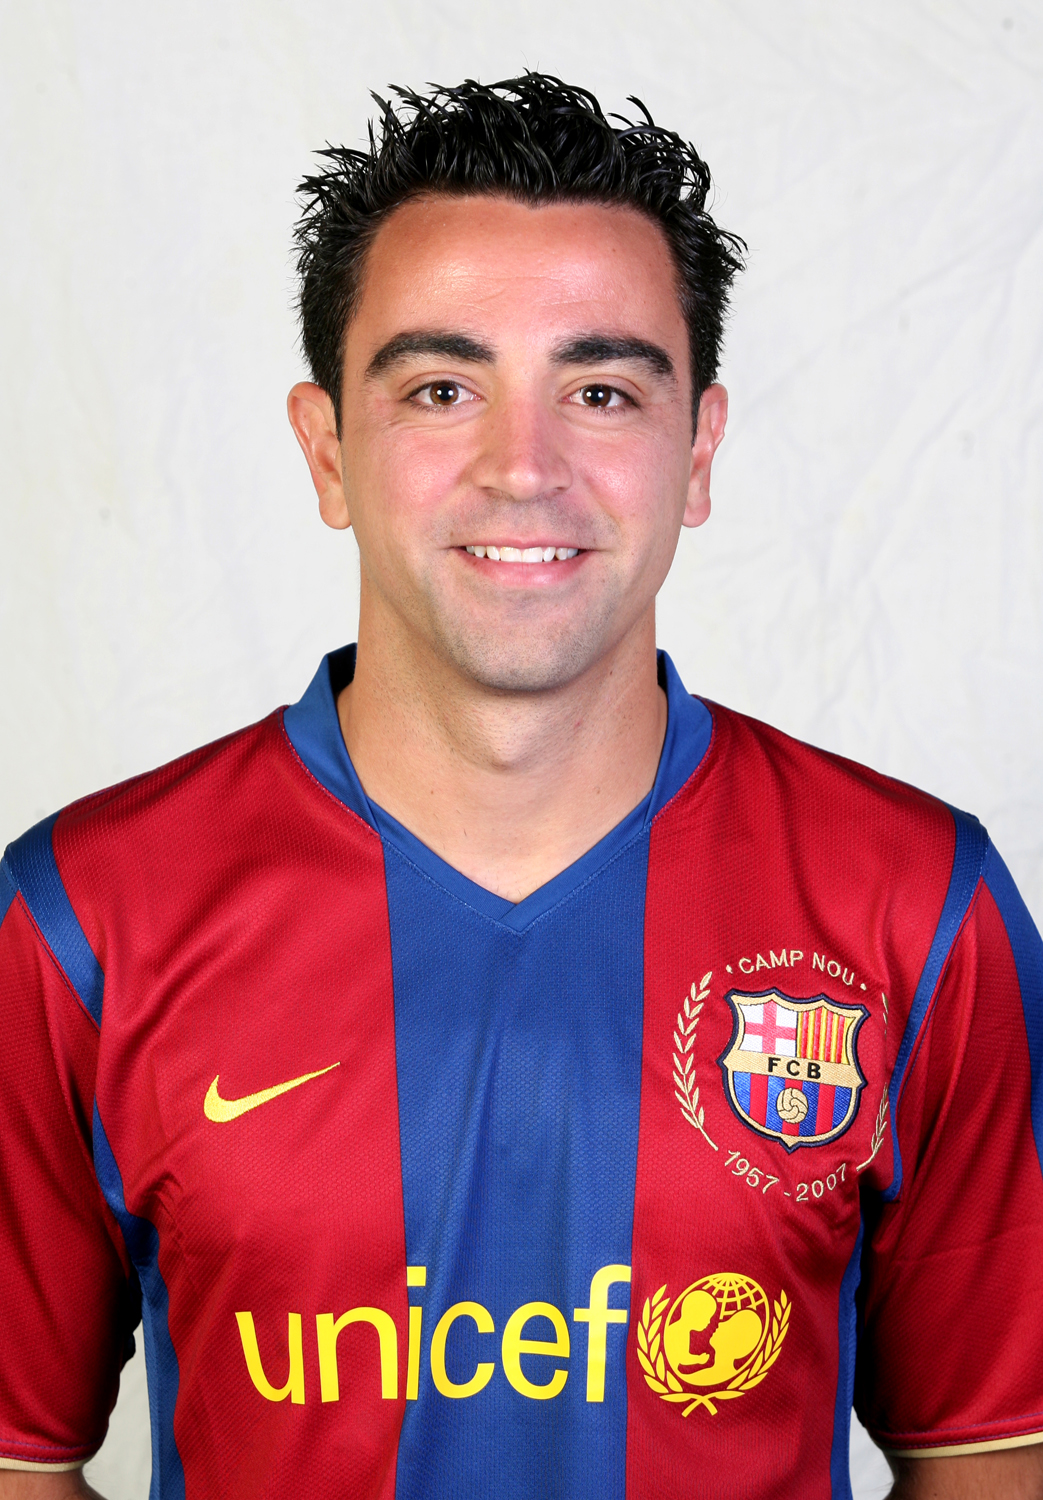 xavi hernandez Barcelona legend xavi hernandez has given an insight into how his mind works on a football pitch and revealed the bizarre nickname his team-mates gave him.